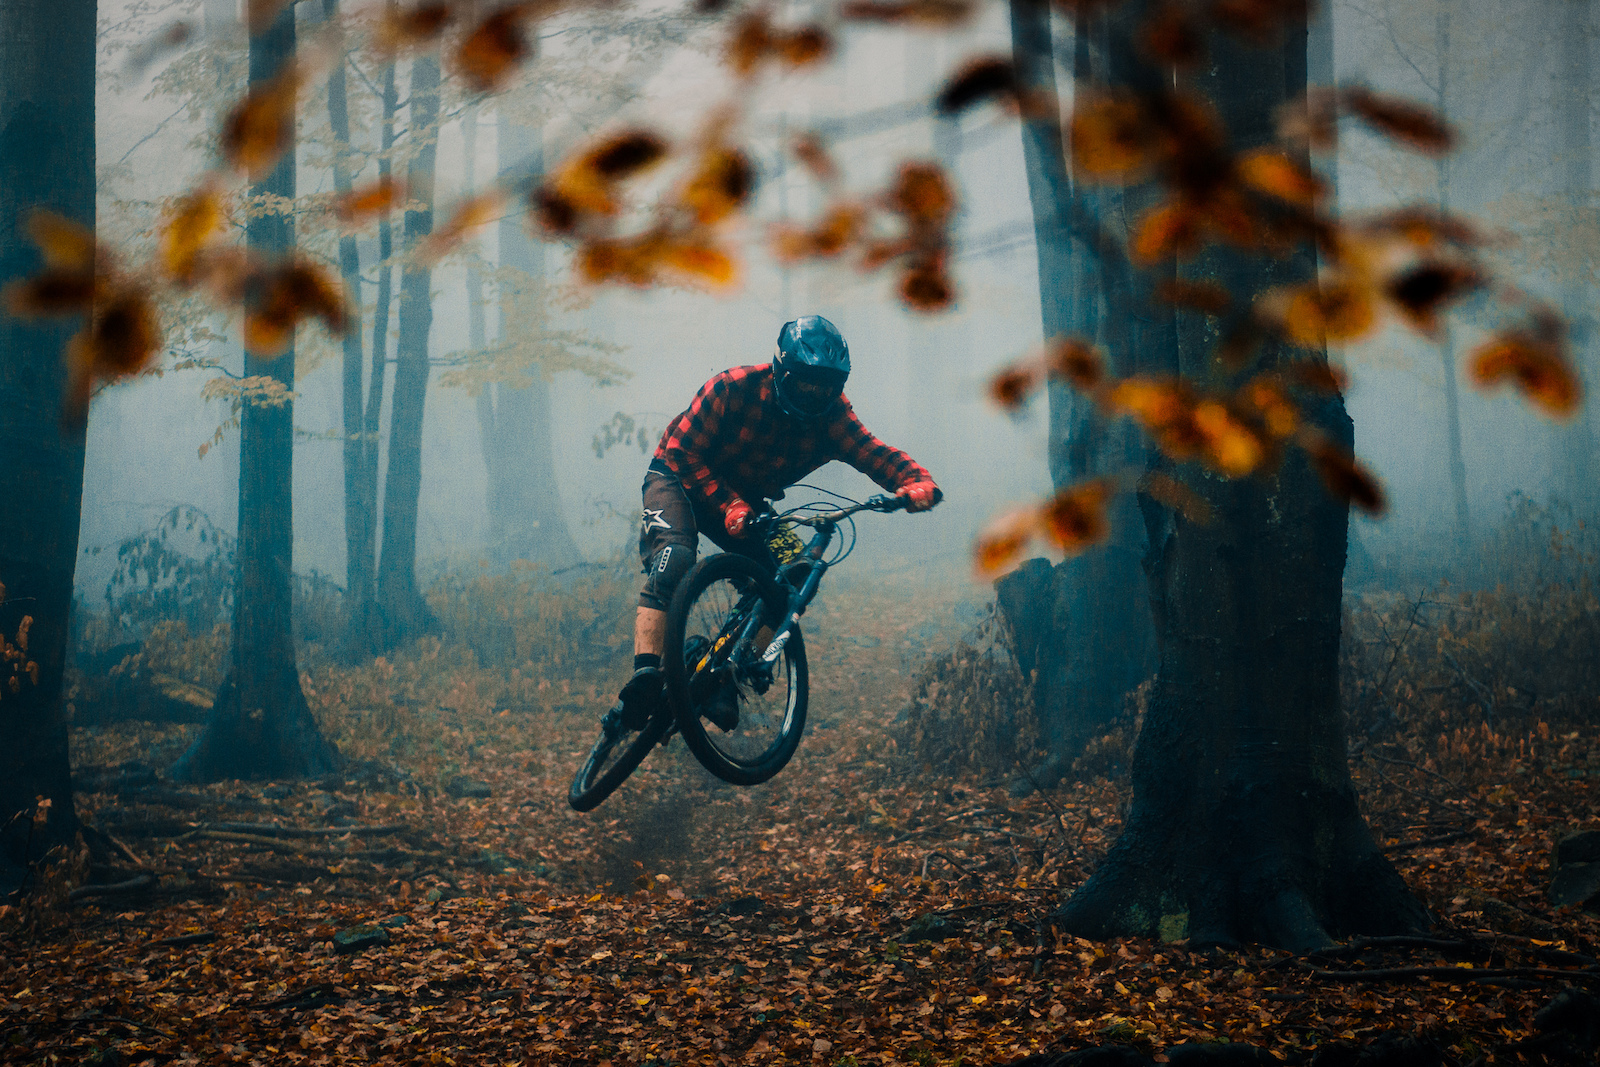 Autumn conditions as we like it